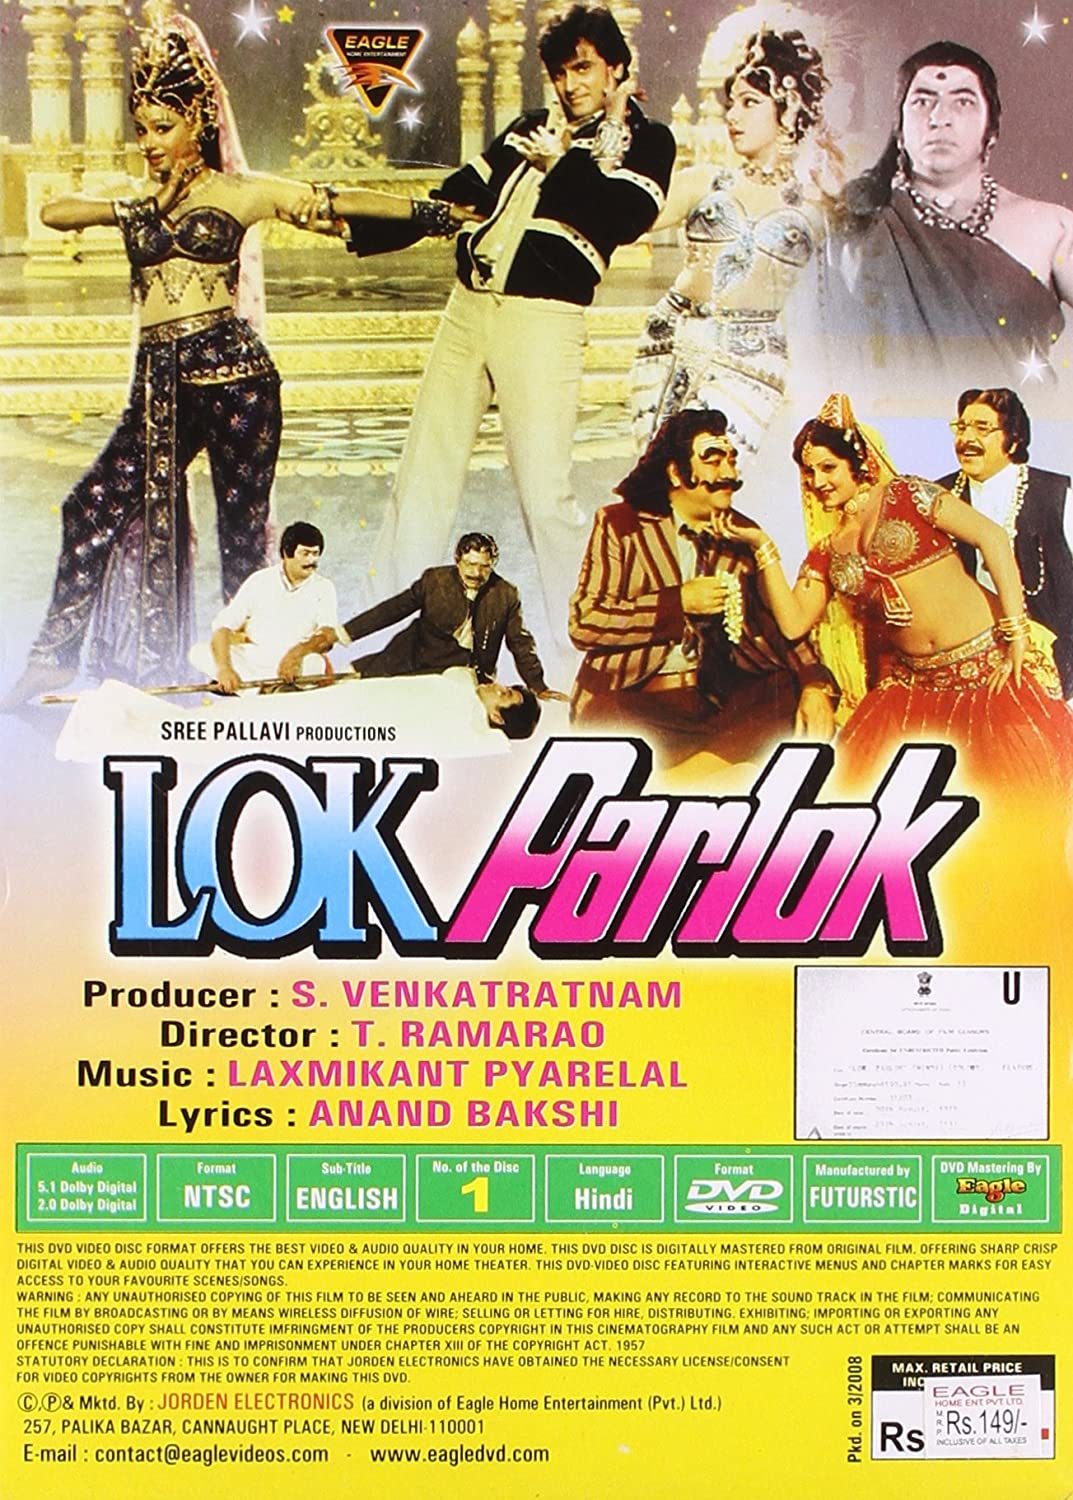 Amazon: Buy Lok Parlok Dvd, Bluray Online At Best Prices In India Movies &